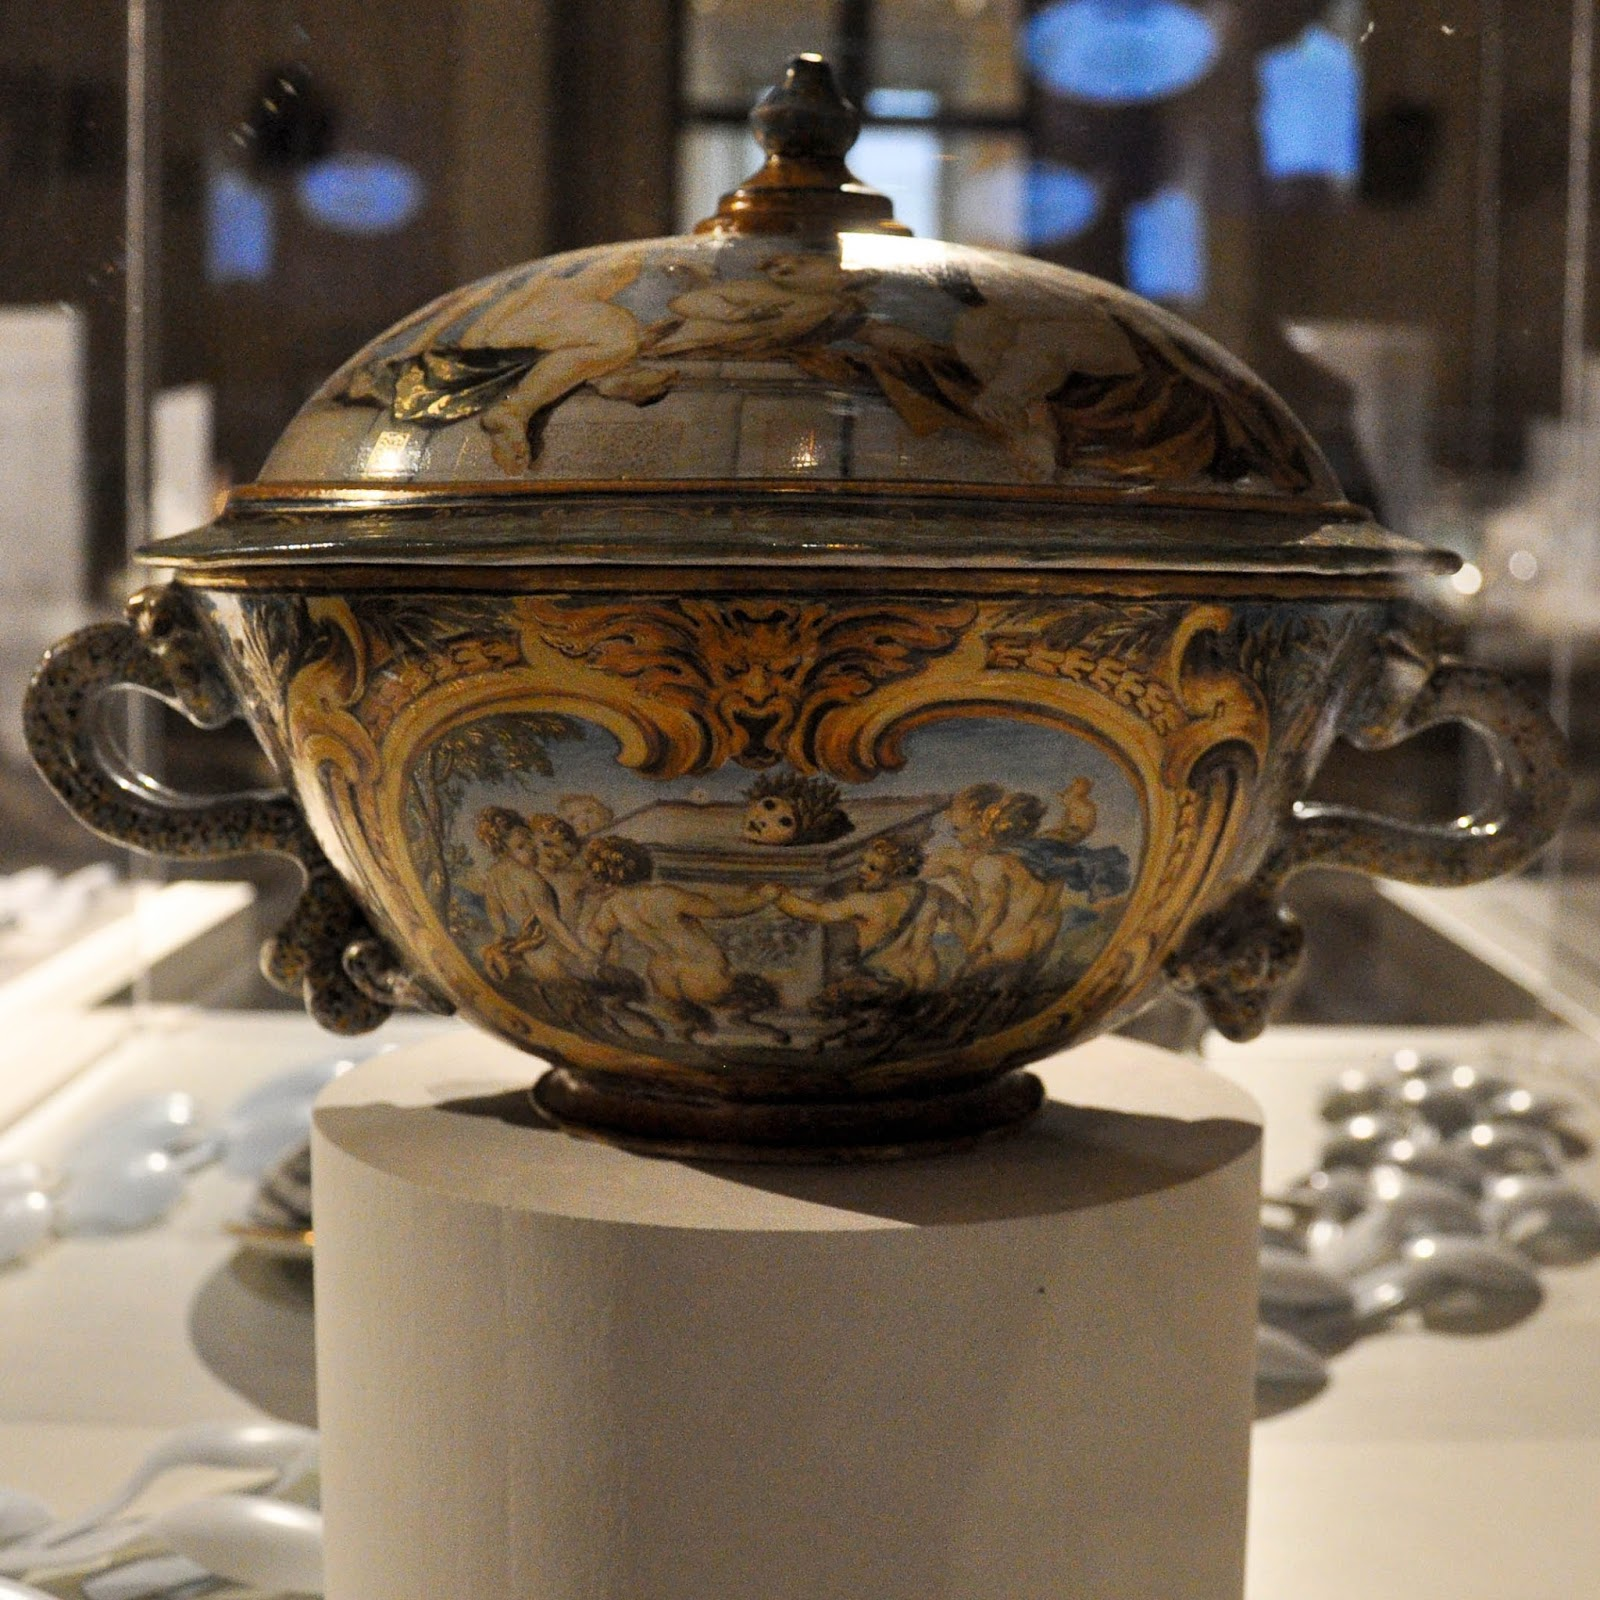 Tureen, First floor, Palazzo Madama, Turin, Italy